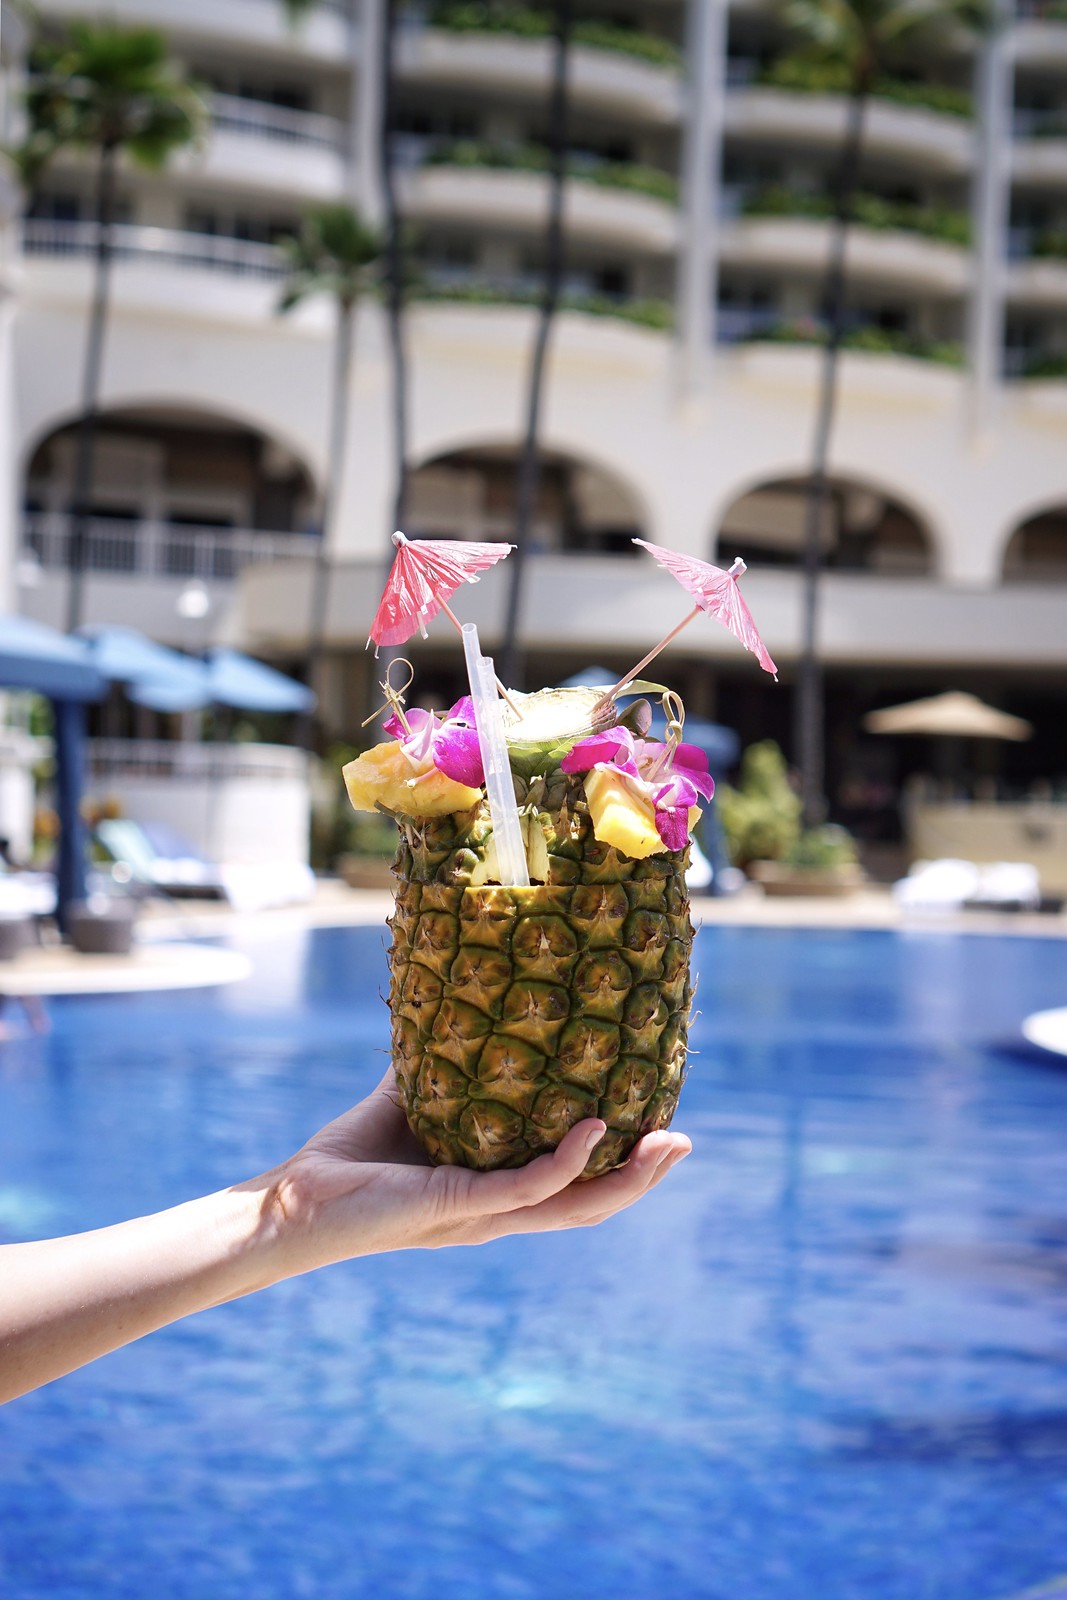 Pretty Pineapple Cocktail Drink Hotel Pool Fairmont Kea Lani BEST Hotel in Maui Where to Stay on Maui Hawaii